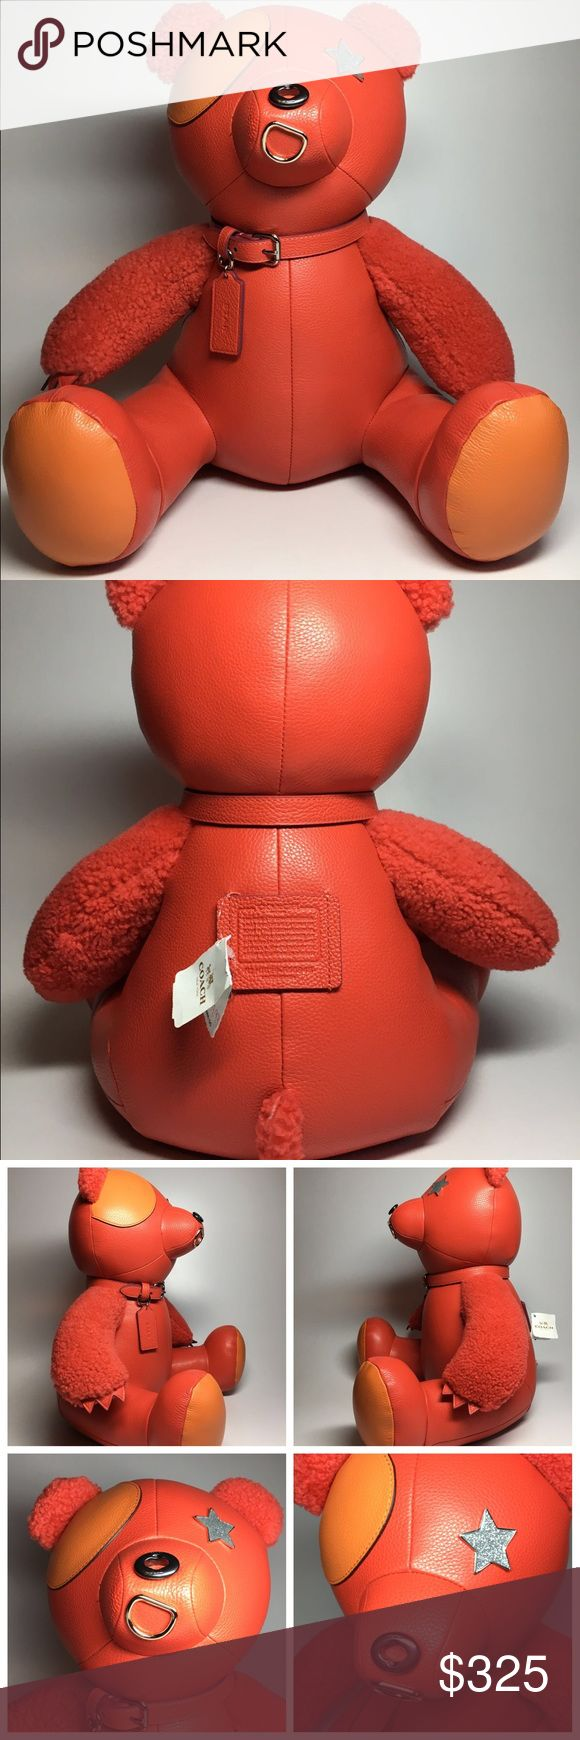 """NWT Coach Leather Bear Huggable Doll 15x15"""" inches Brand New With Tag Limited Edition Coach Bear named """"Star"""".   Stands approx 15 inches tall Approx 15 inches wide at his feet Collar has the Coach hang tag with his name stamped on one side and Coach on the other She is made of leather and has the label on her back. The label reads:  """"I am Star. A Coach Leather Bear.   I was created by a team of elves in the coach workshop  using bits and pieces of the finest handbags and jewelry.  My starry…"""